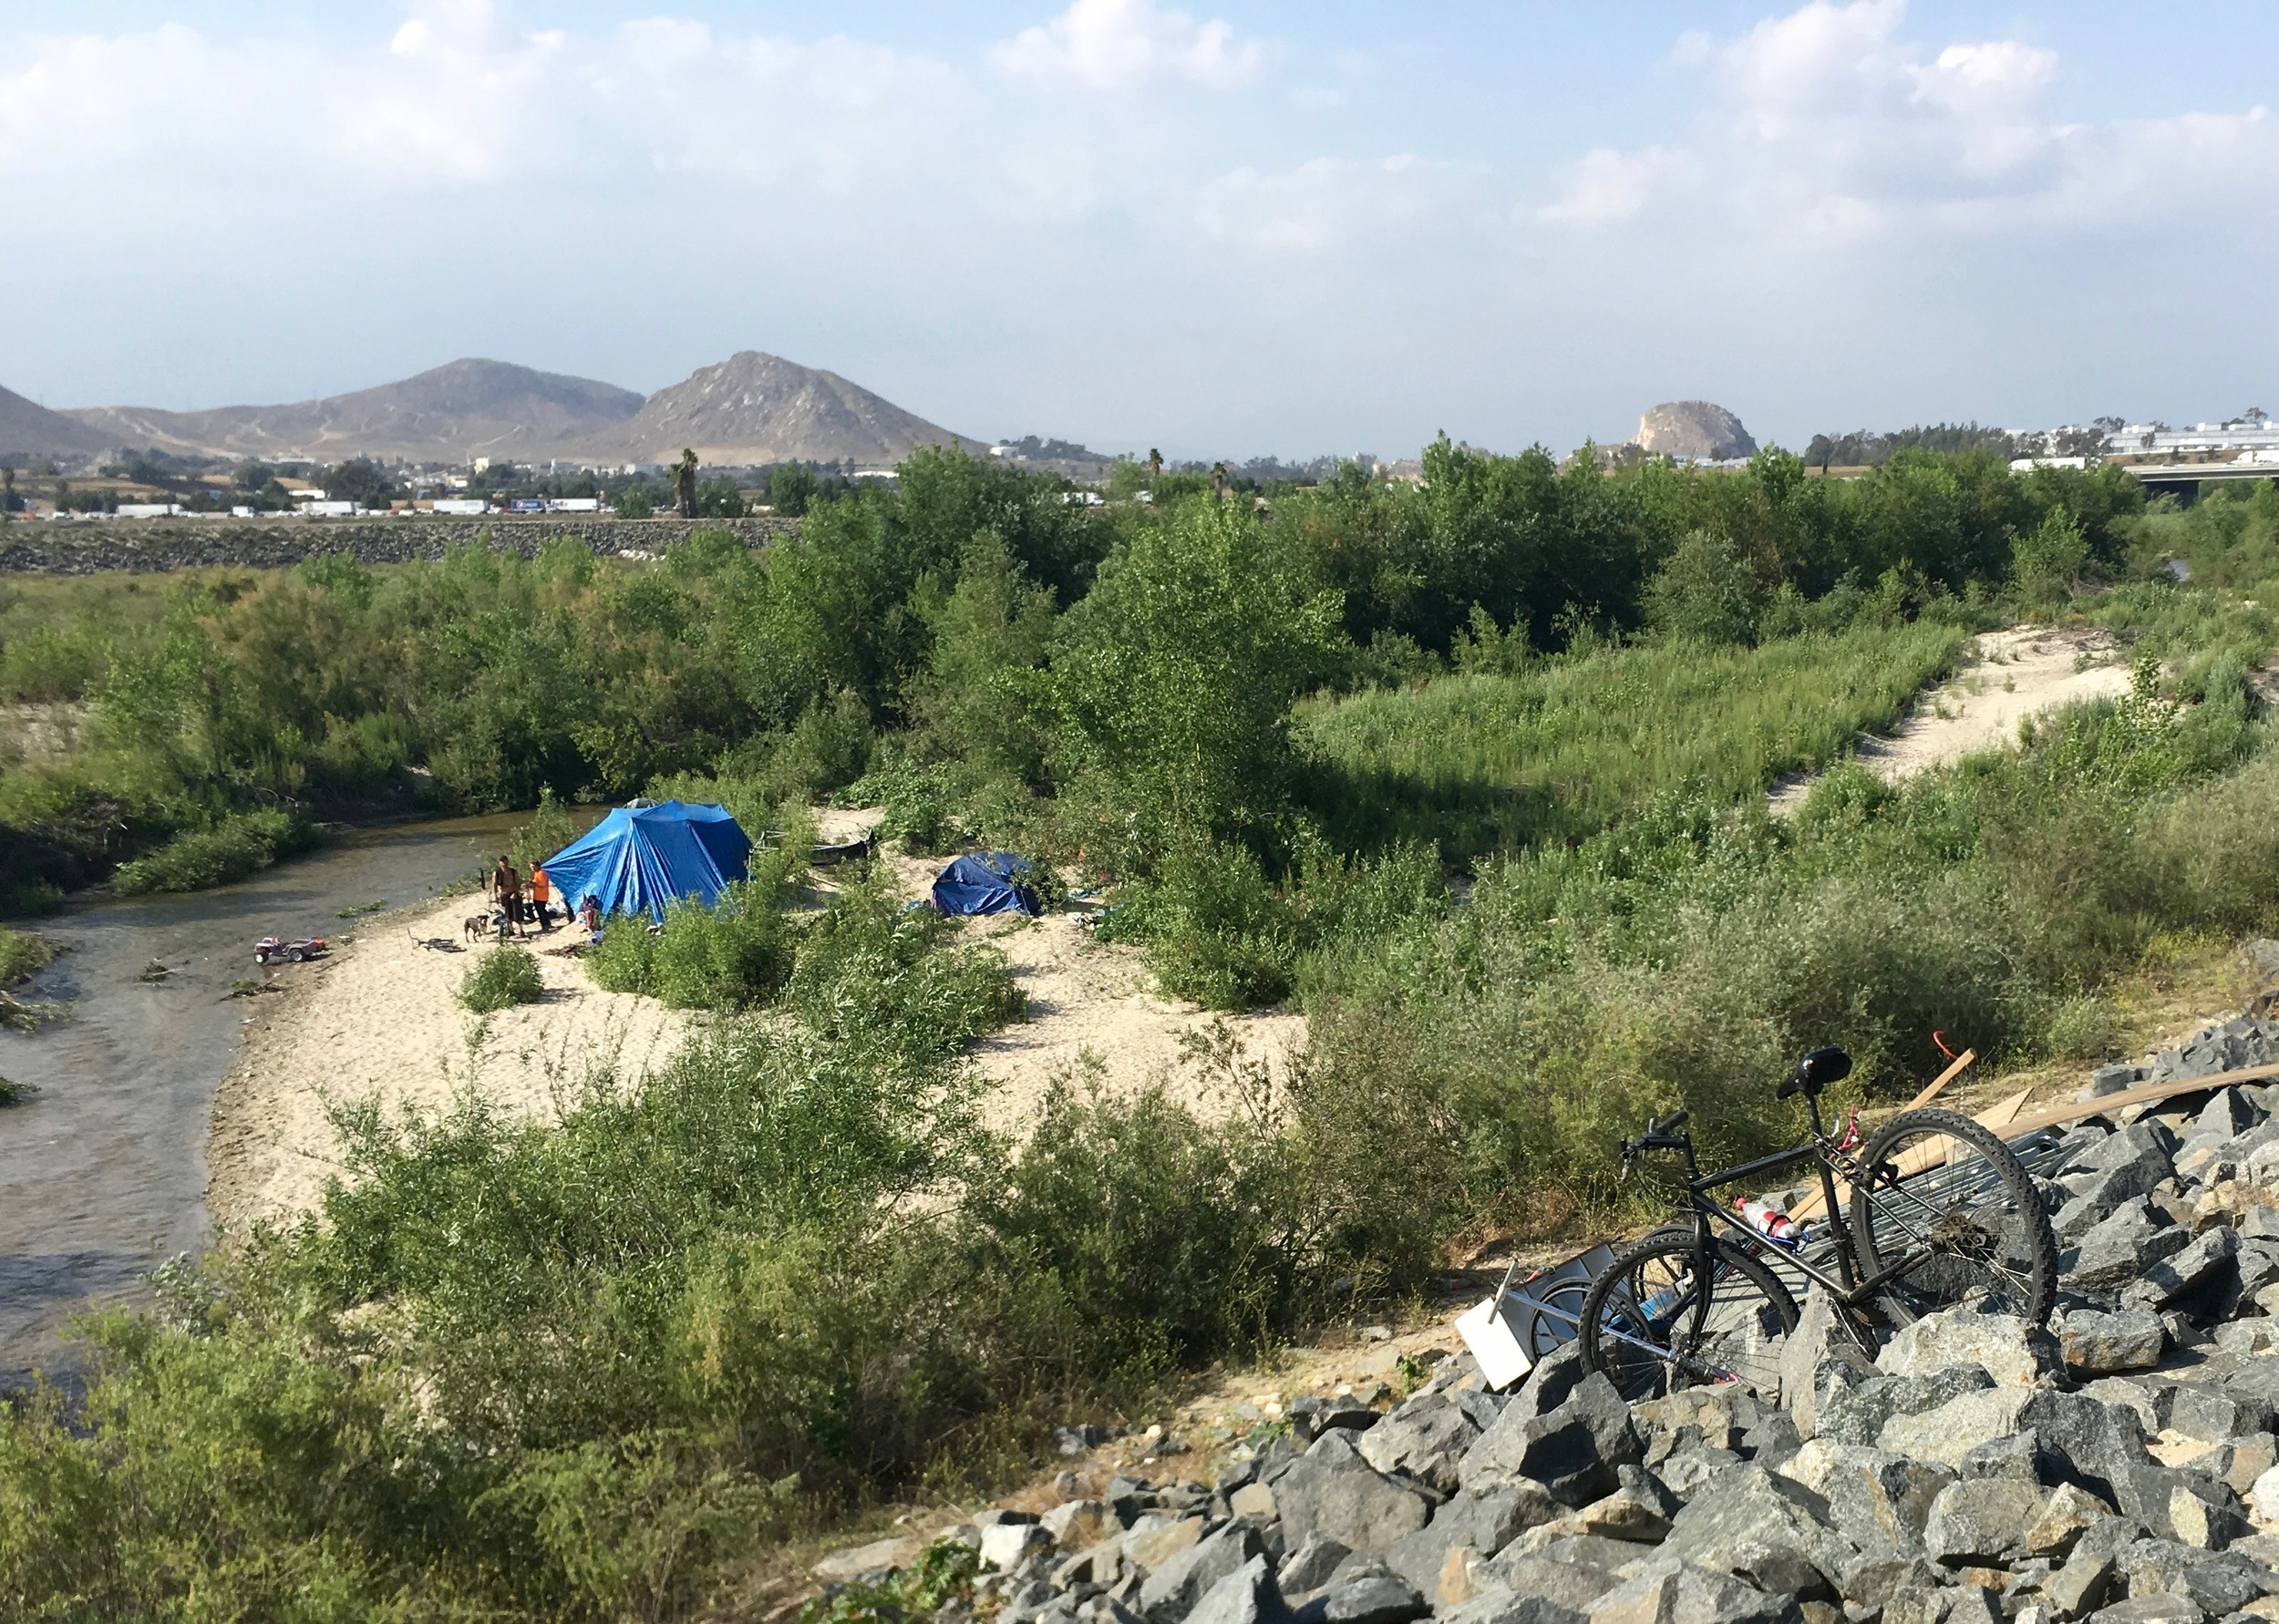 """One of many encampments of """"homeless"""" people on the Santa Ana River. I wonder if we would have regarded folks living similarly as homeless 100 years ago?"""